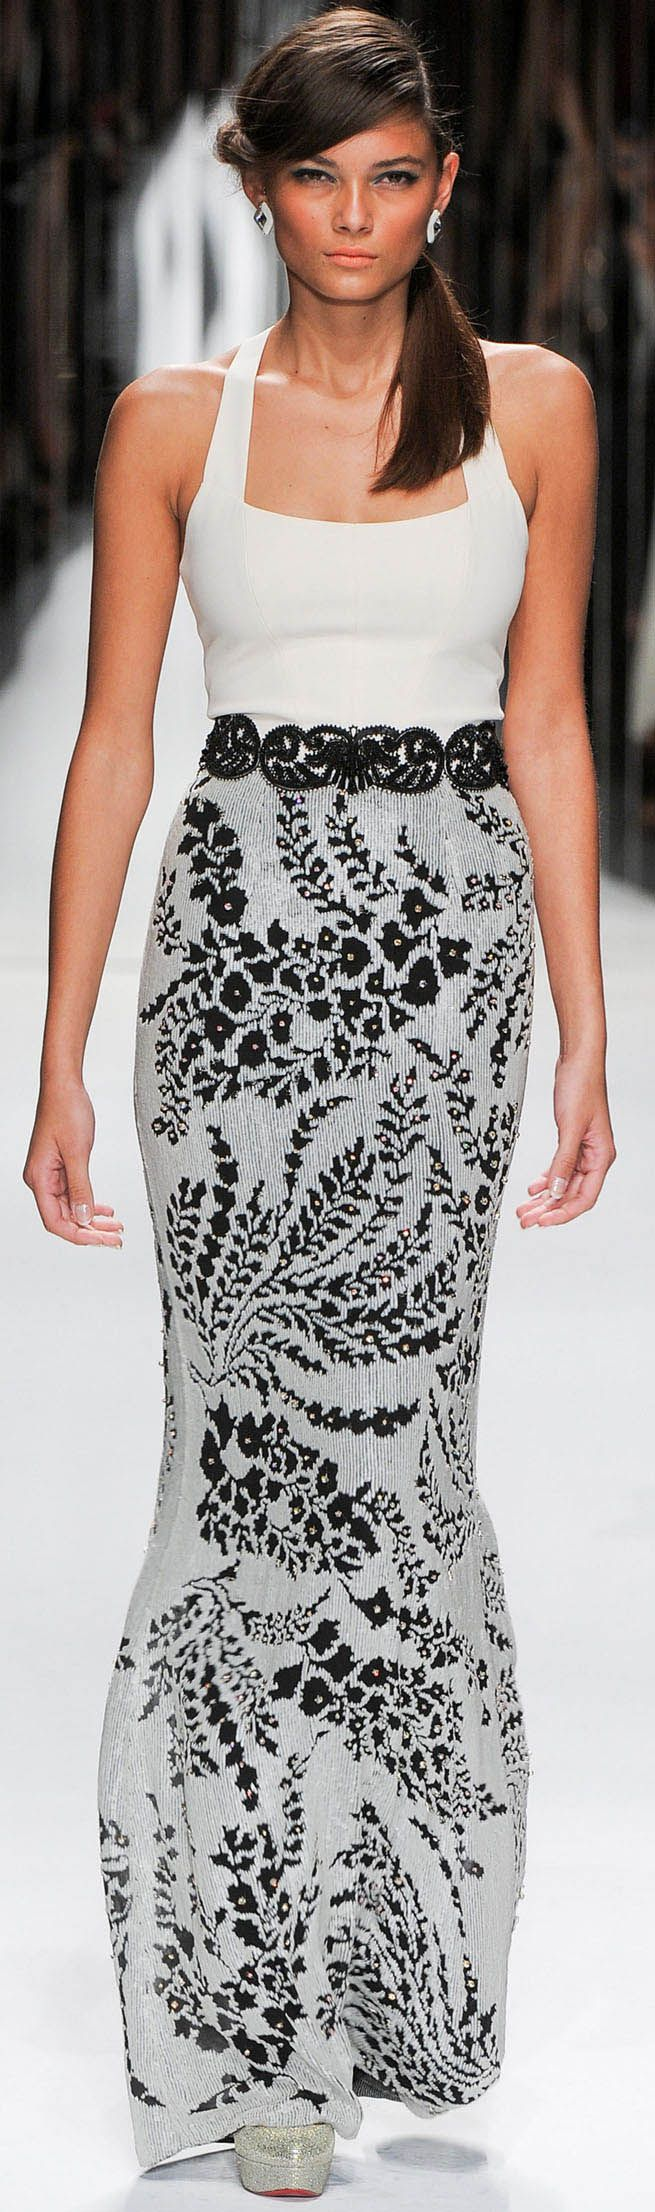 Jenny Packham. Spring 2013 Ready to Wear. The print on that skirt